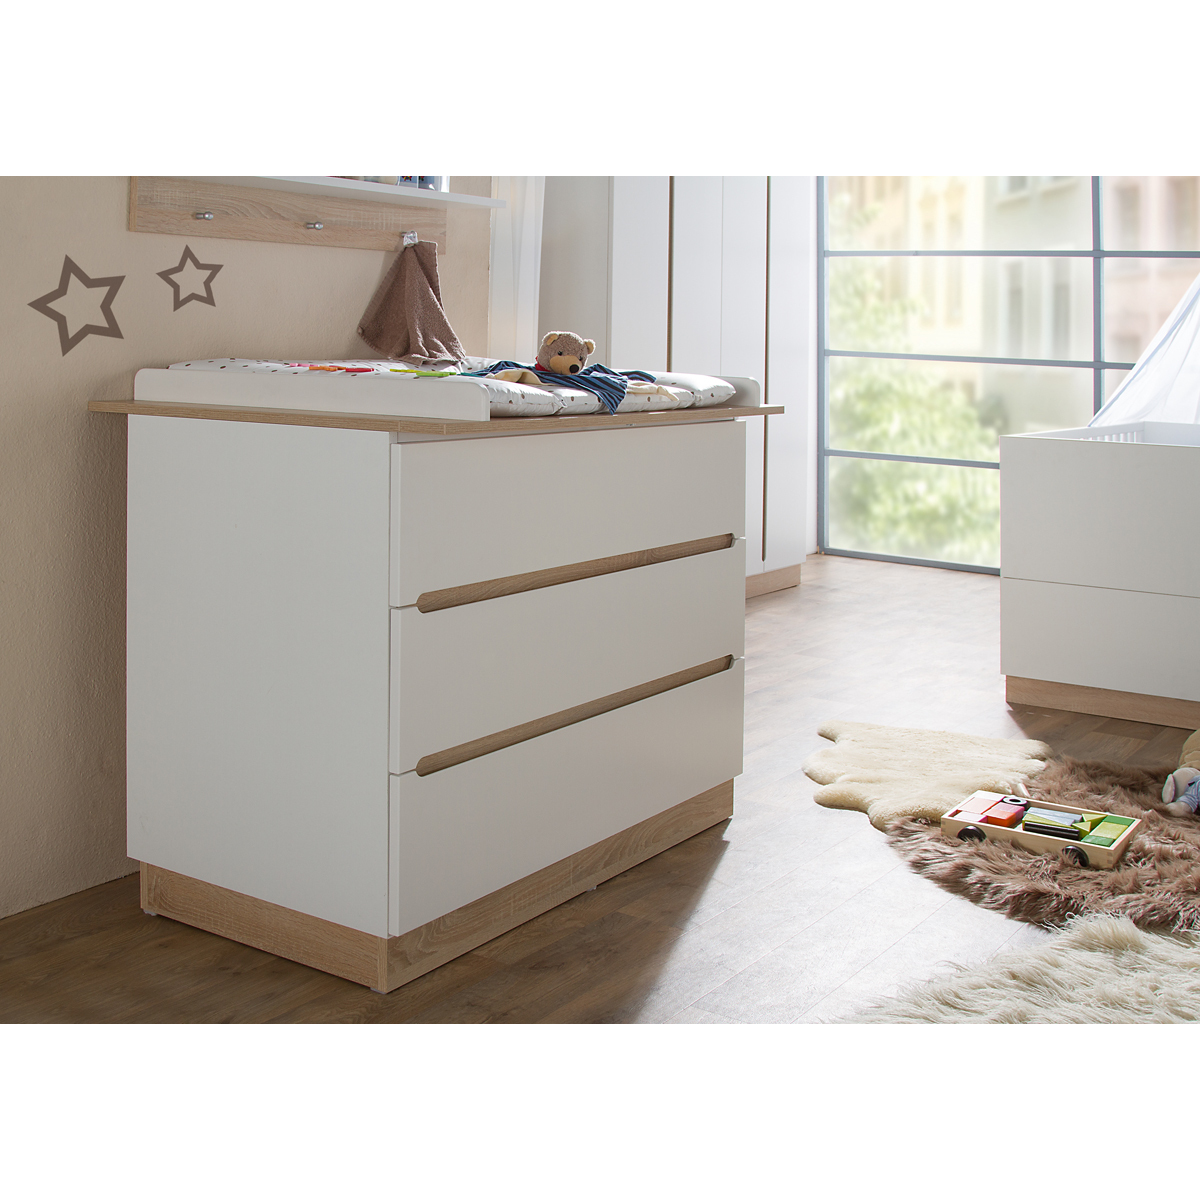 Geuther commode avec plan langer collection united - Plan a langer adaptable sur toute commode ...